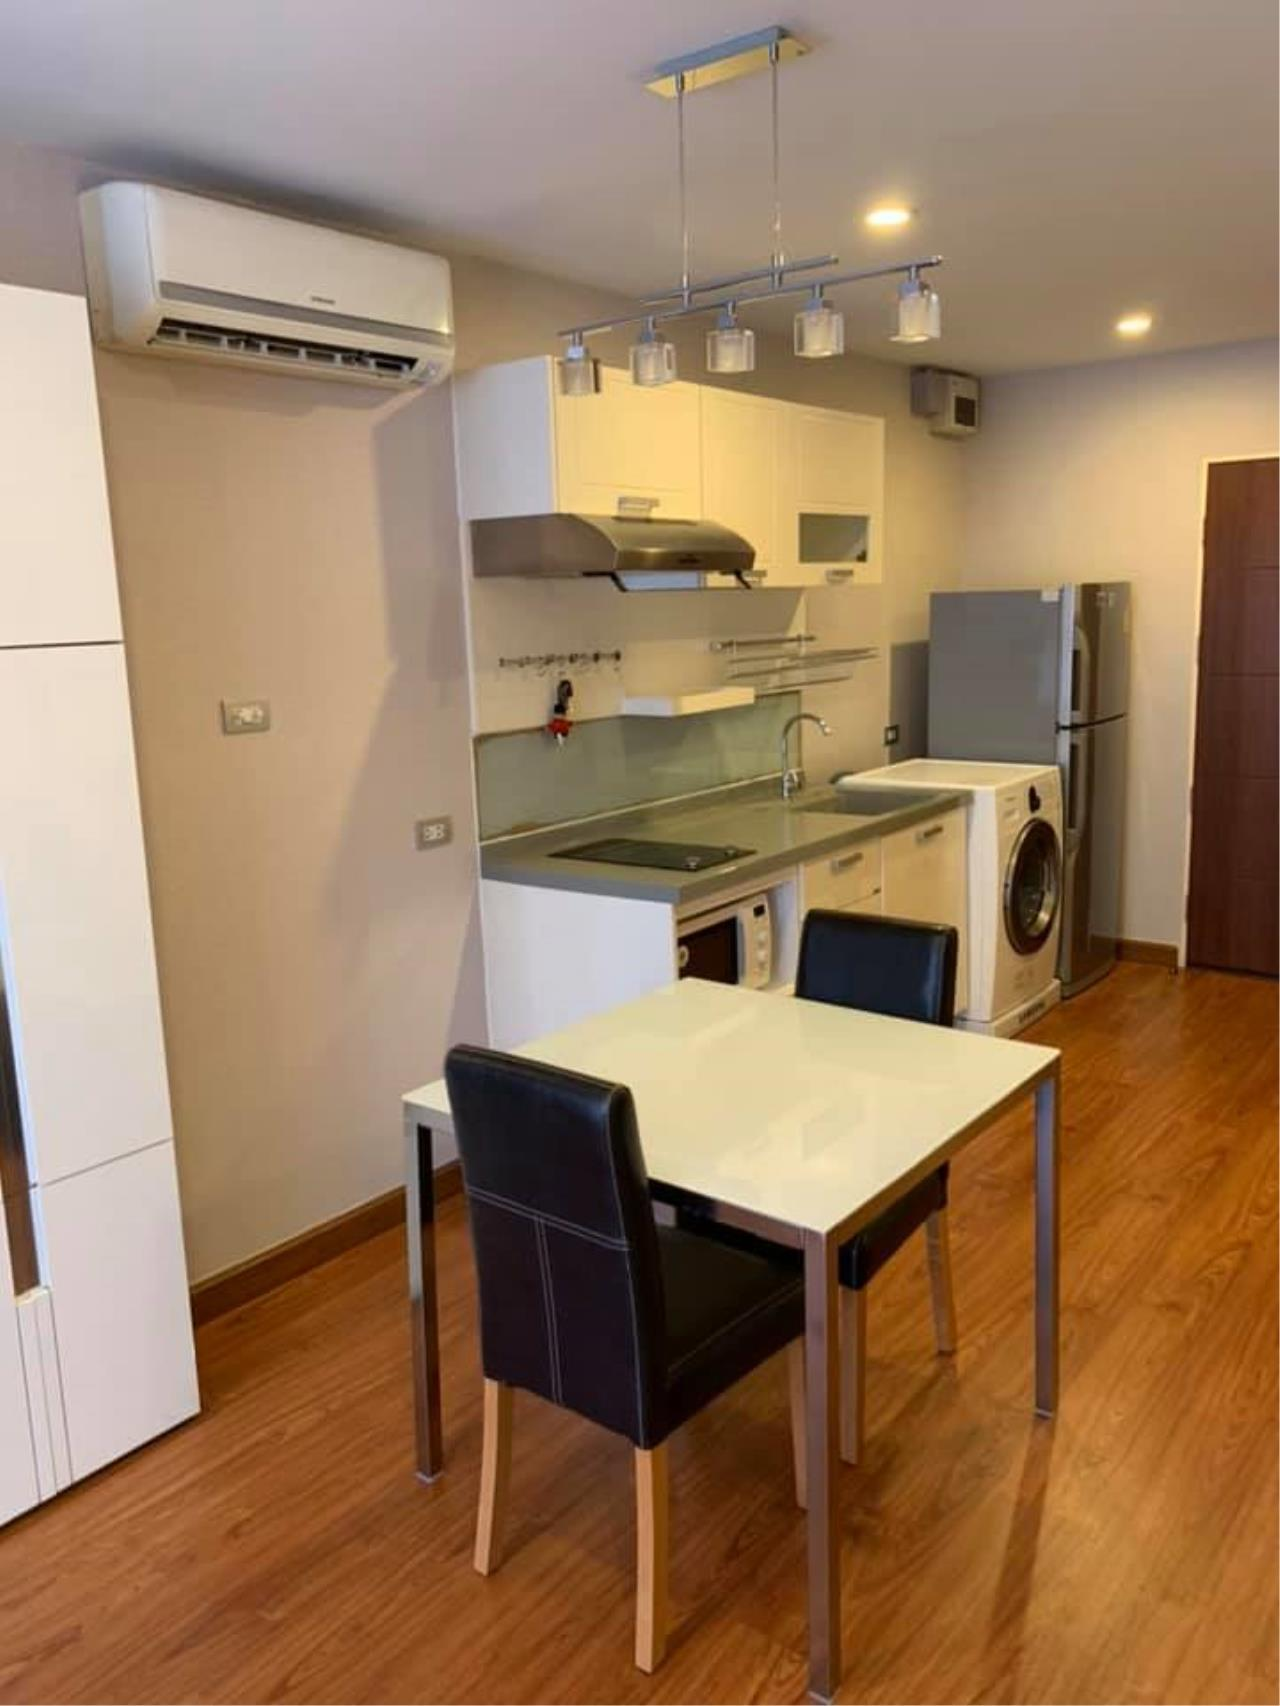 Agent Thawanrat Agency's Condo for rental TOURMALINE GOLD SATHORN – TAKSIN Near BTS.Krung Thon Buri. 1 bedroom,1 bathroom. size 40 sqm.Floor 10 th. fully furnished Ready to move in 4